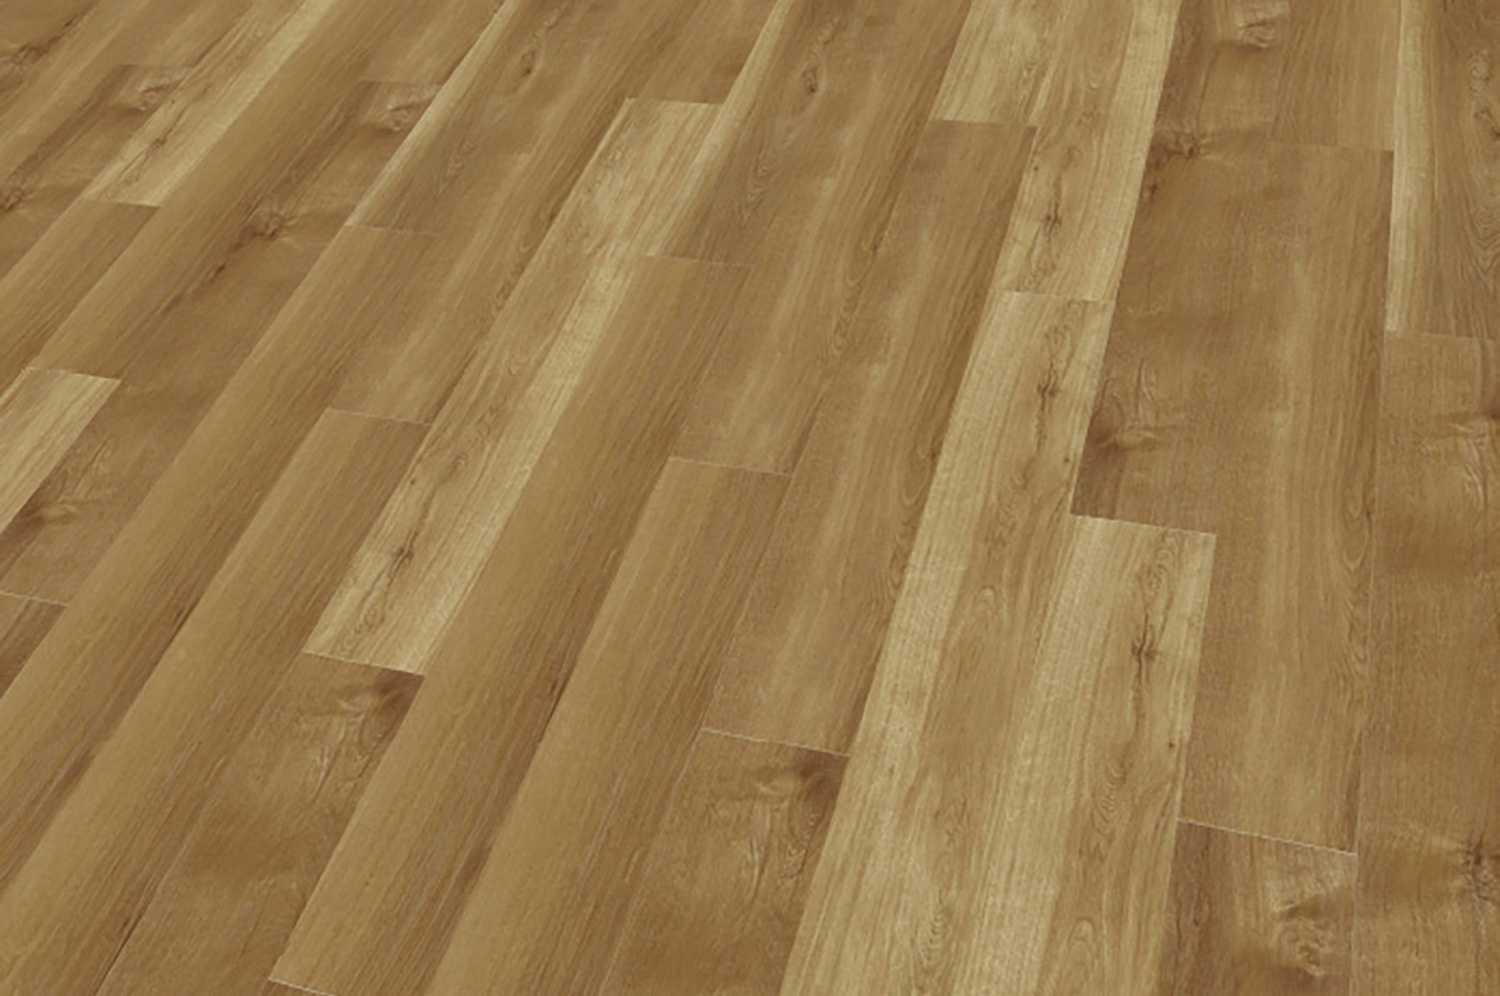 vinyl-mflor-broad-leaf-dark-sycamore